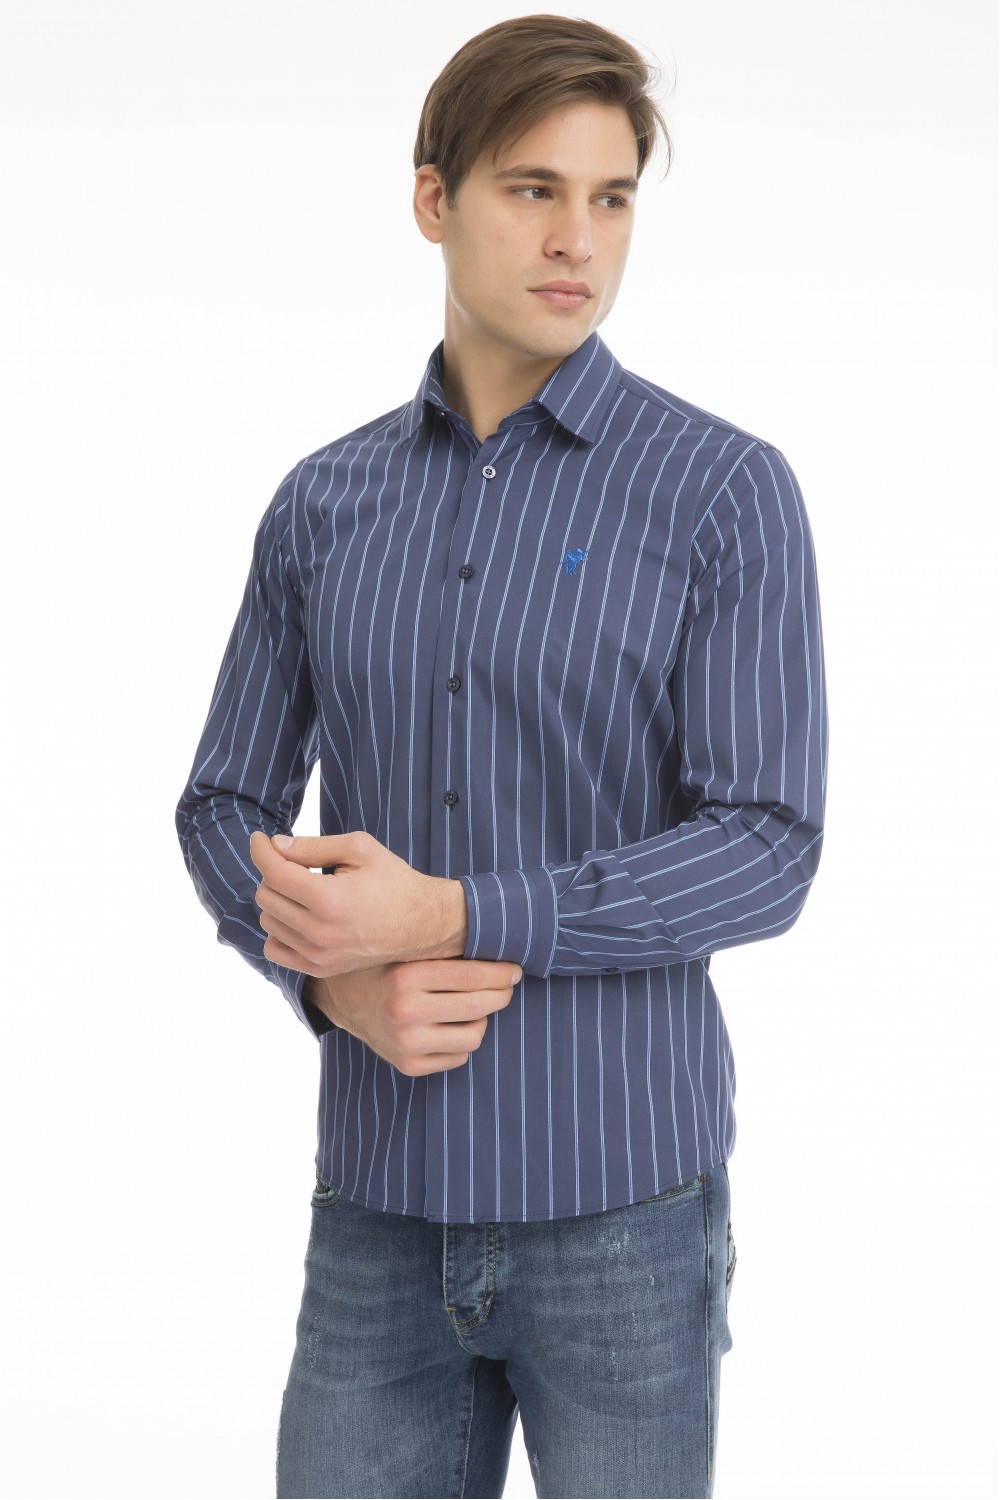 Men's Shirt Kent Collar Royal Striped